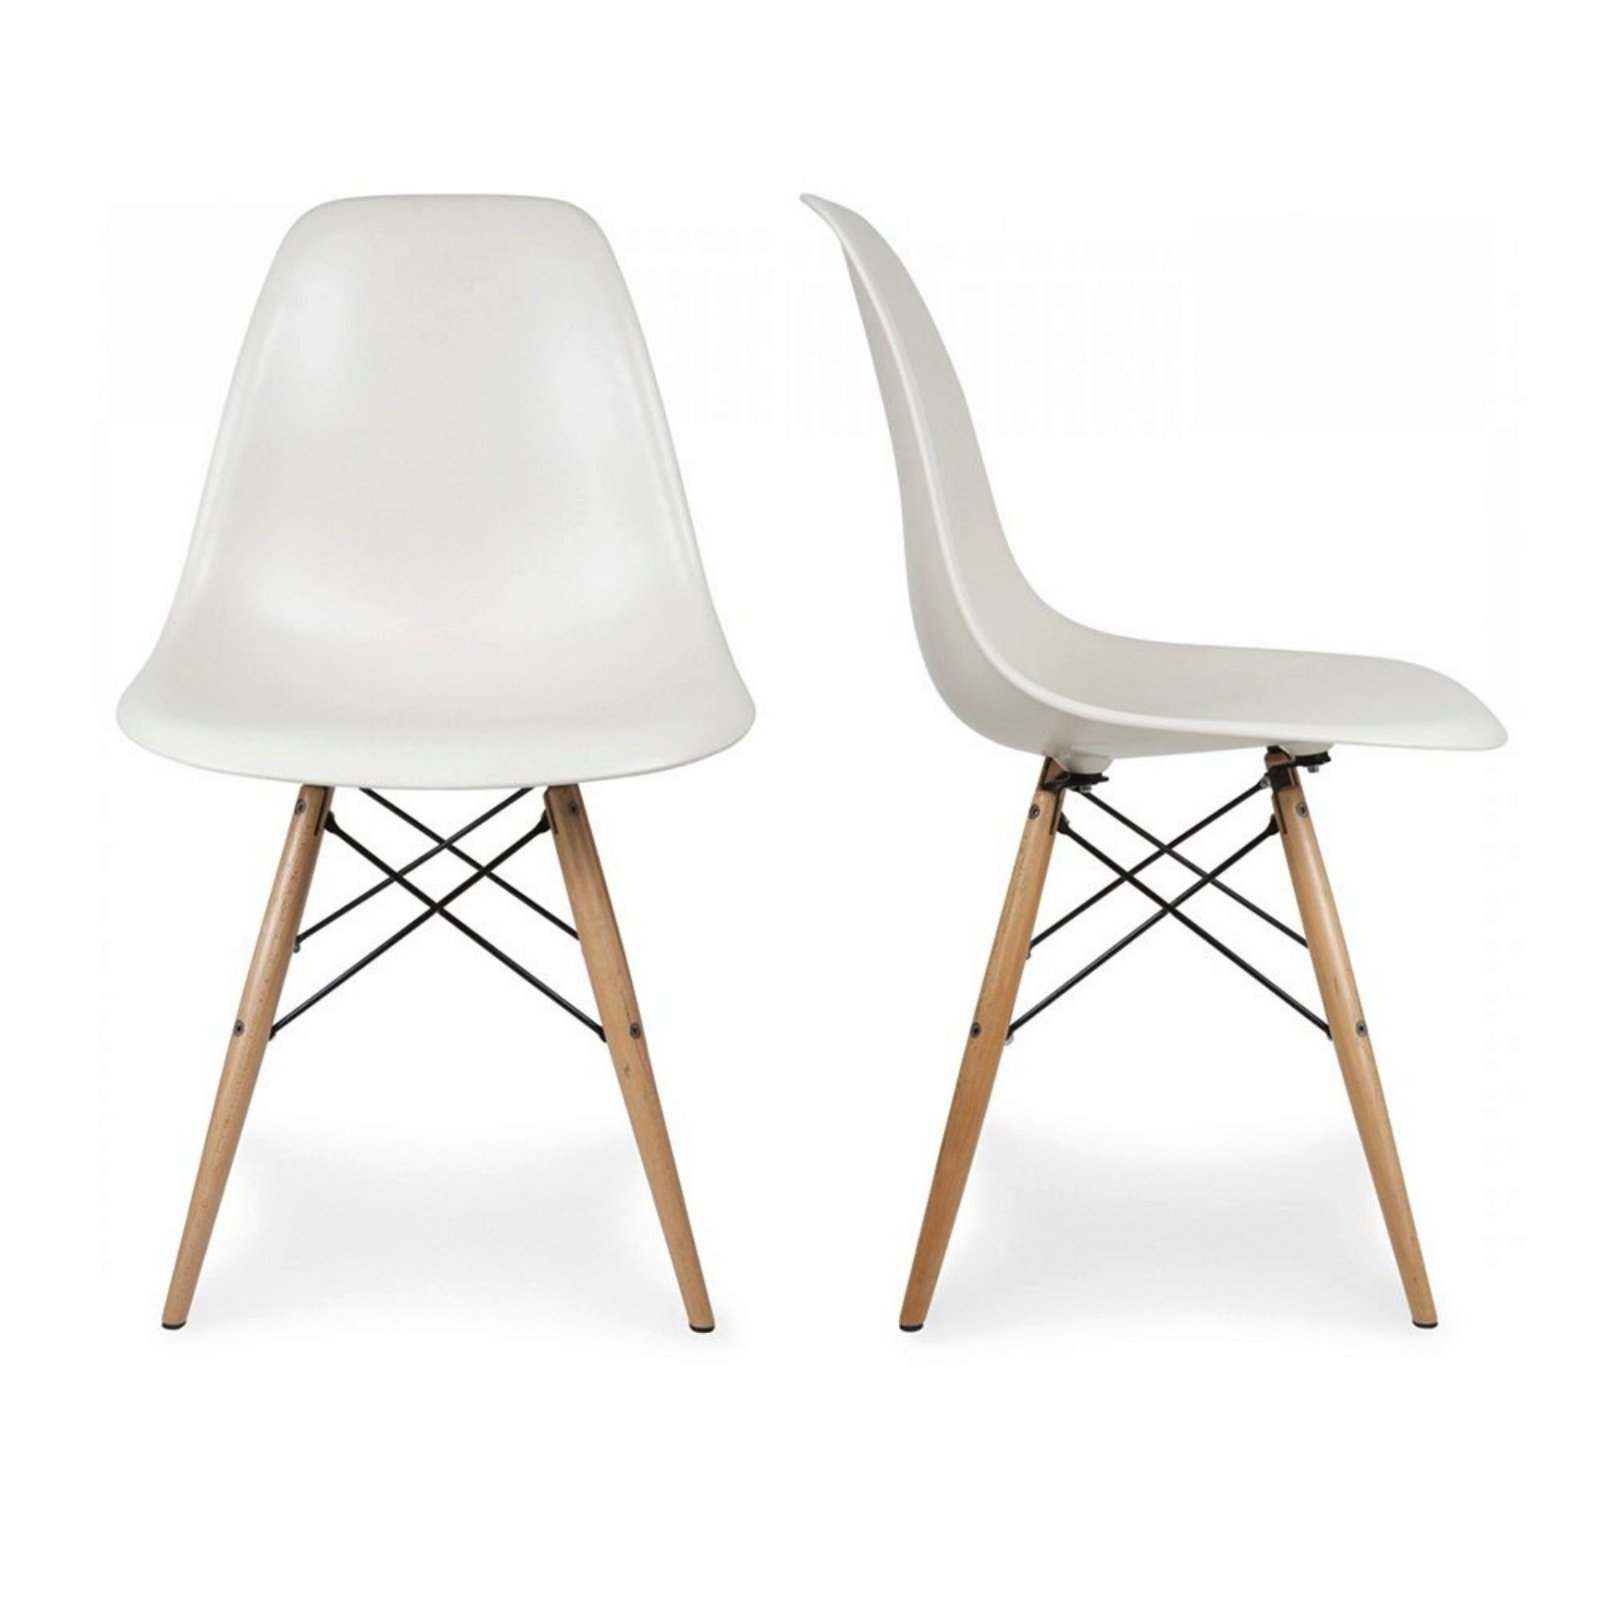 Set of 2 Retro Style Wood Base Mid Century Modern Shell Dining wooden Chair Dowel legs White #566